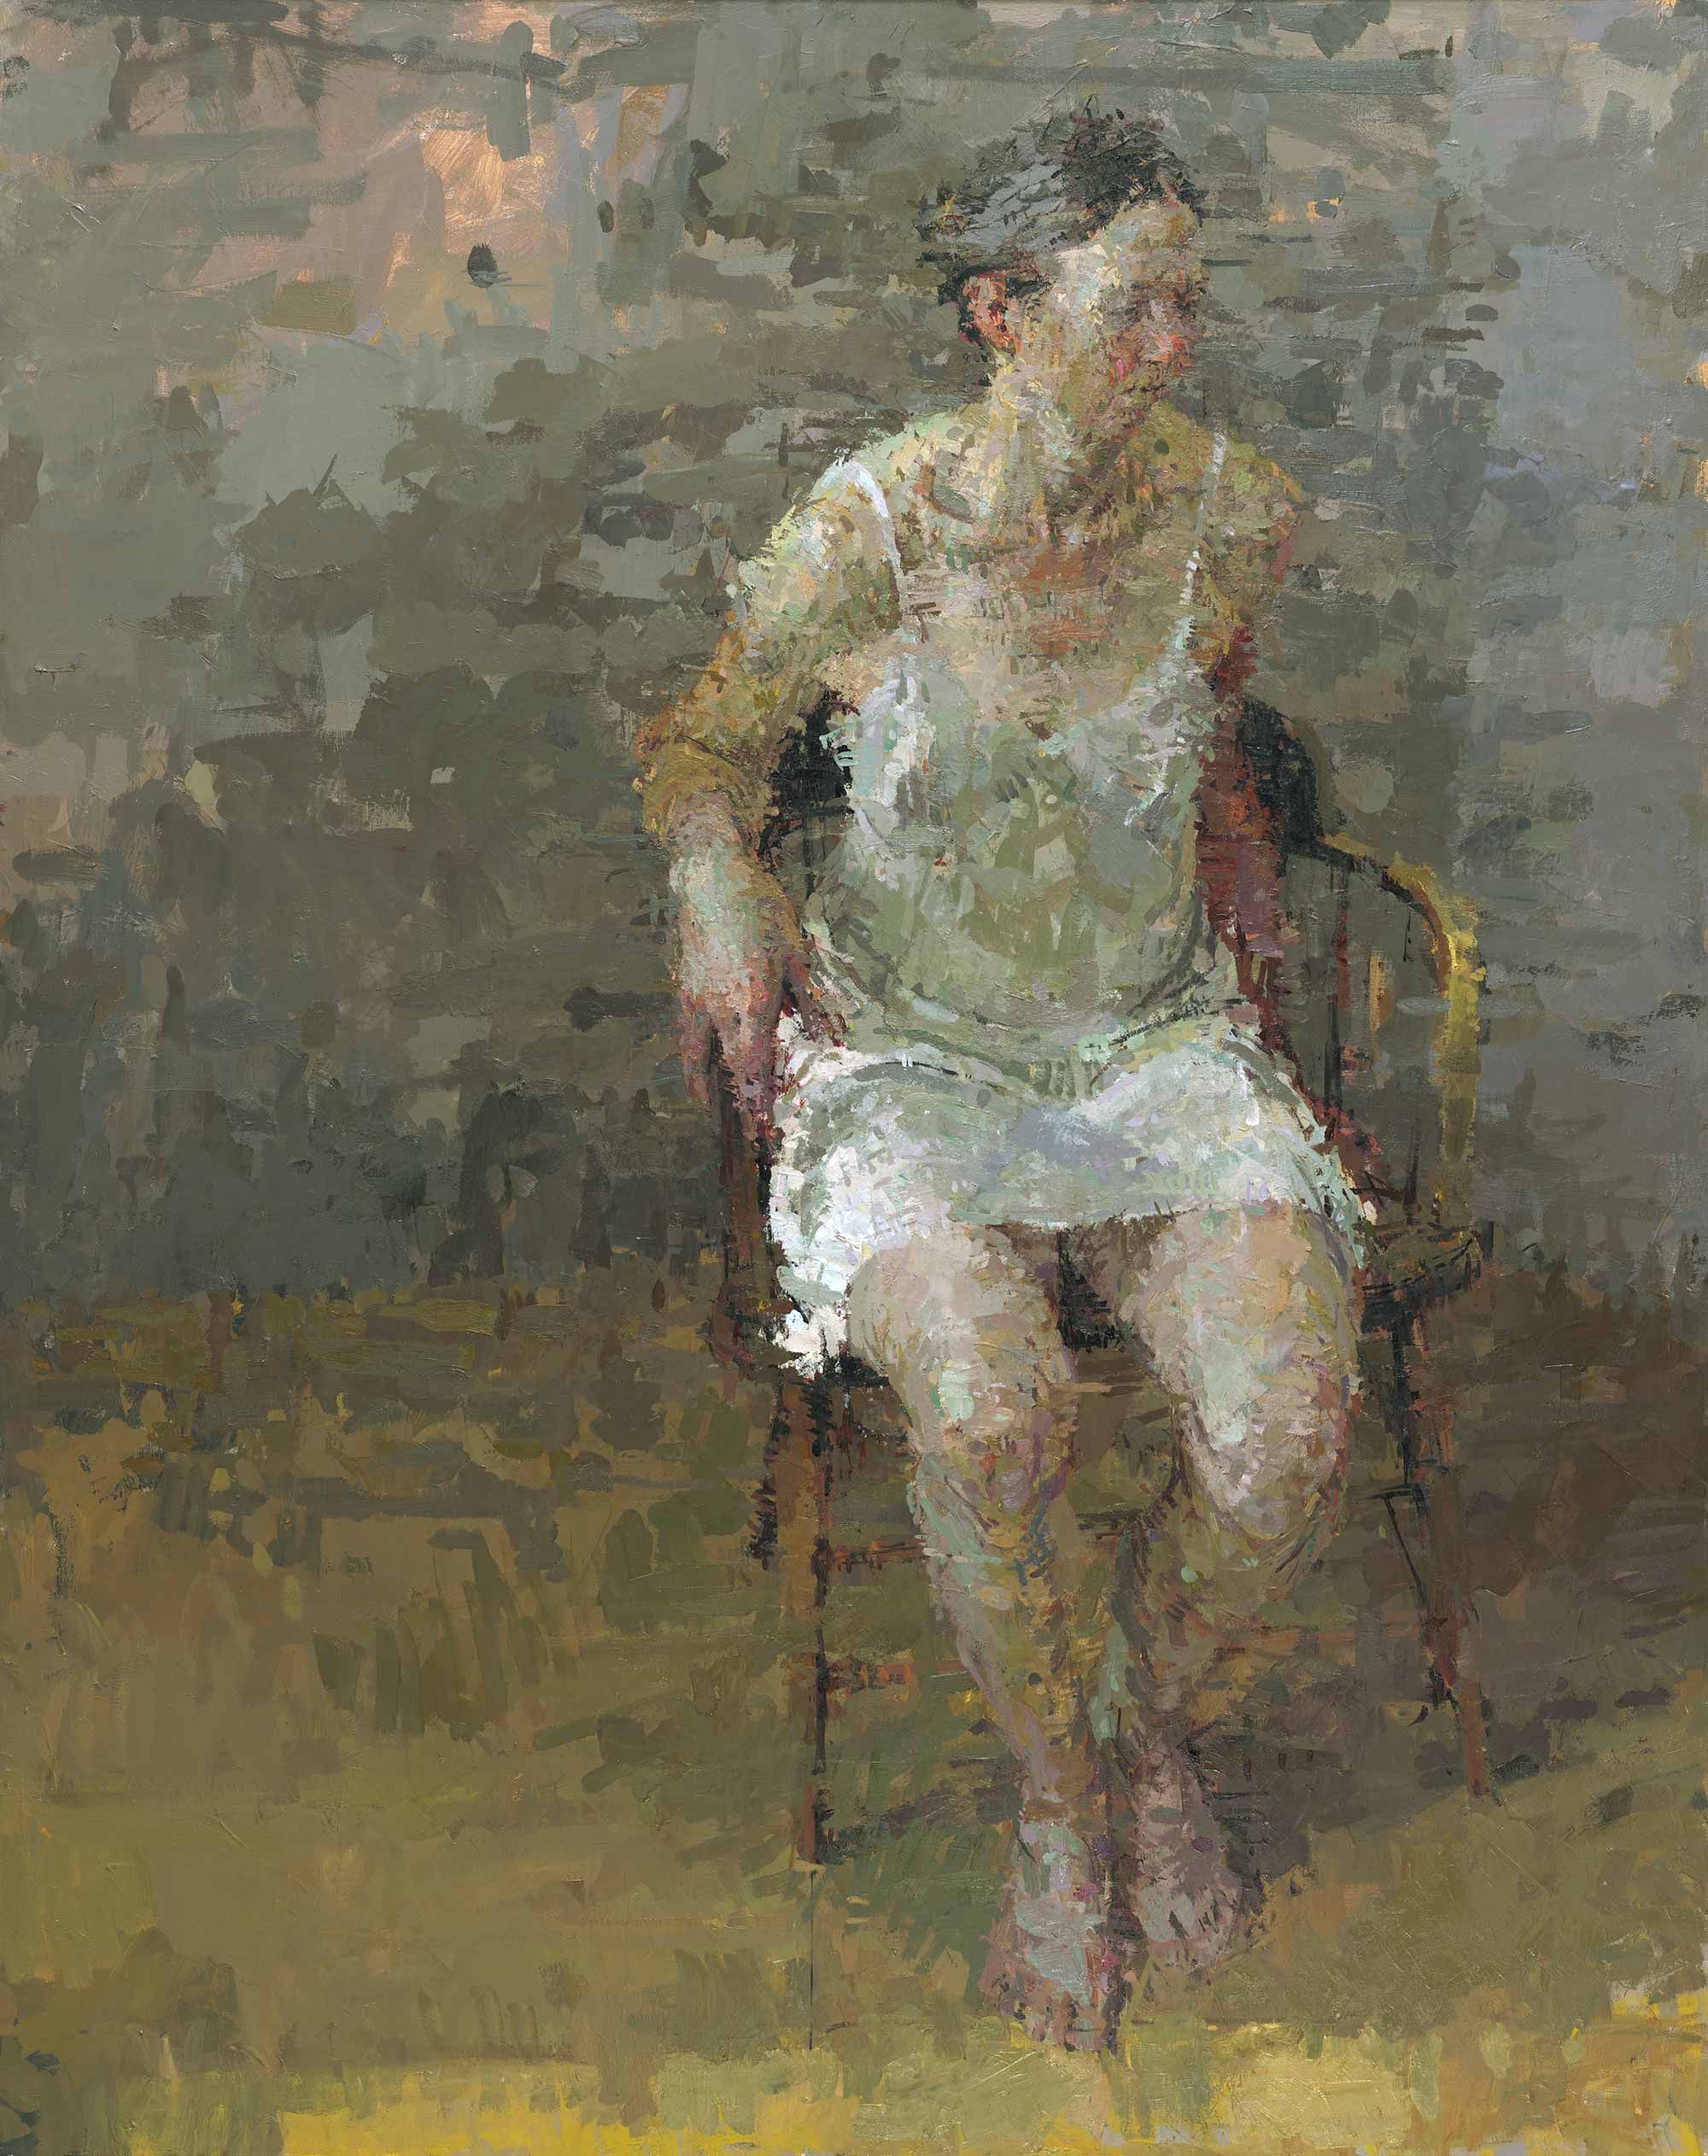 Ann Gale, Rachel, 2007, oil on canvas, 58 x 46 inches (courtesy of Ann Gale and Dolby Chadwick Gallery © Ann Gale)